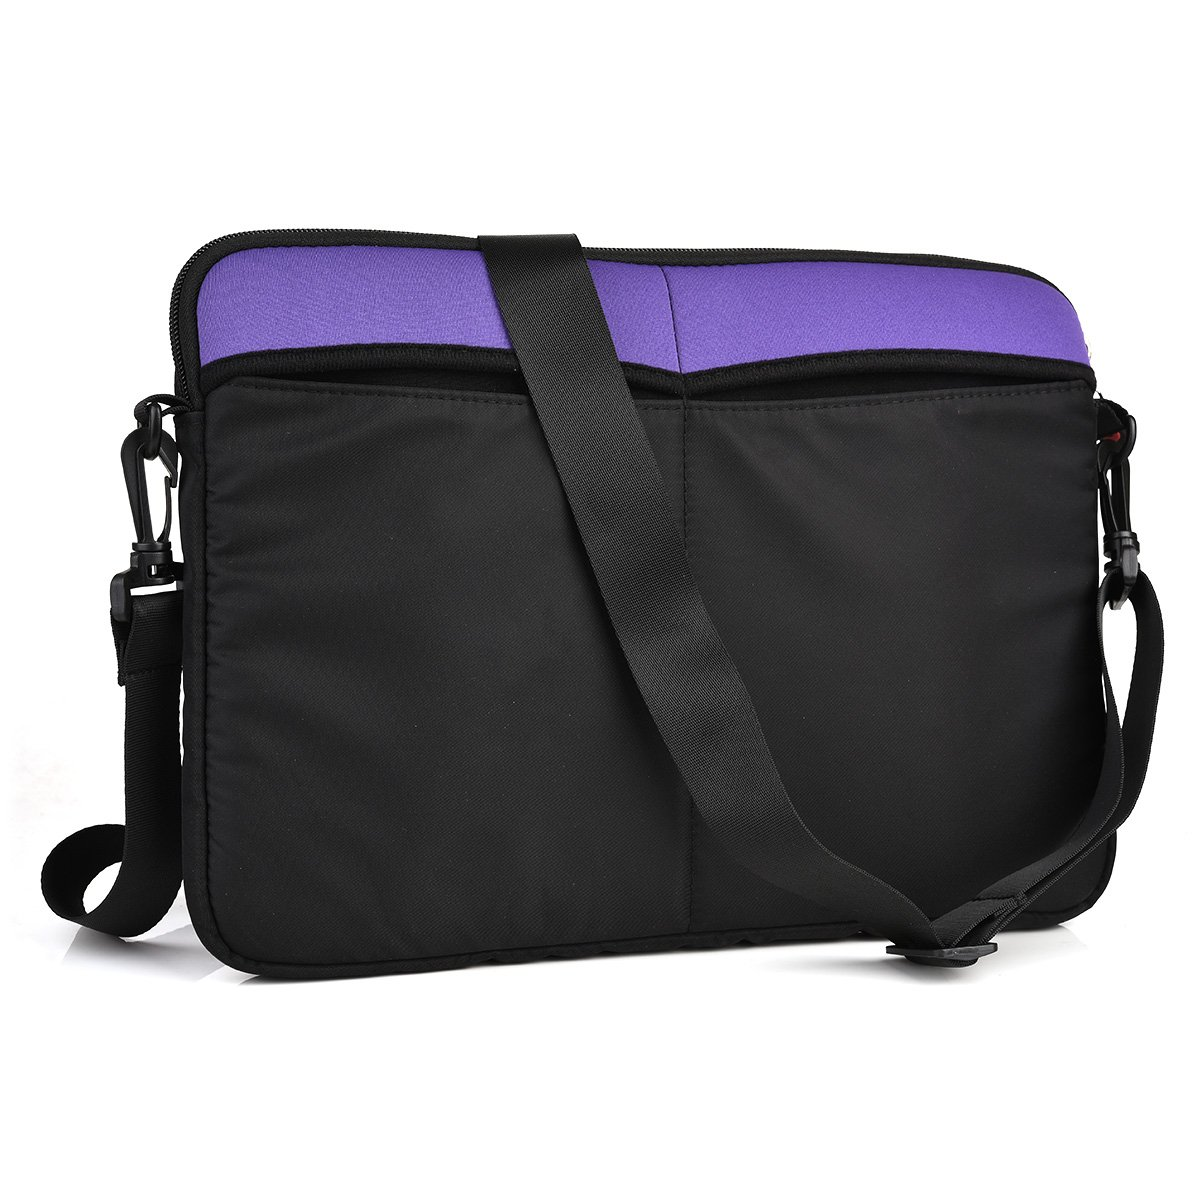 well-wreapped NuVur Slim Universal ::Extra pockets:: Unisex Messenger Laptop Tablet Bag Fits Dell Inspiron 11 3000 2-in-1 Series, 11.6 Inch 2 in 1 Convertible Touchscreen Laptop|Purple